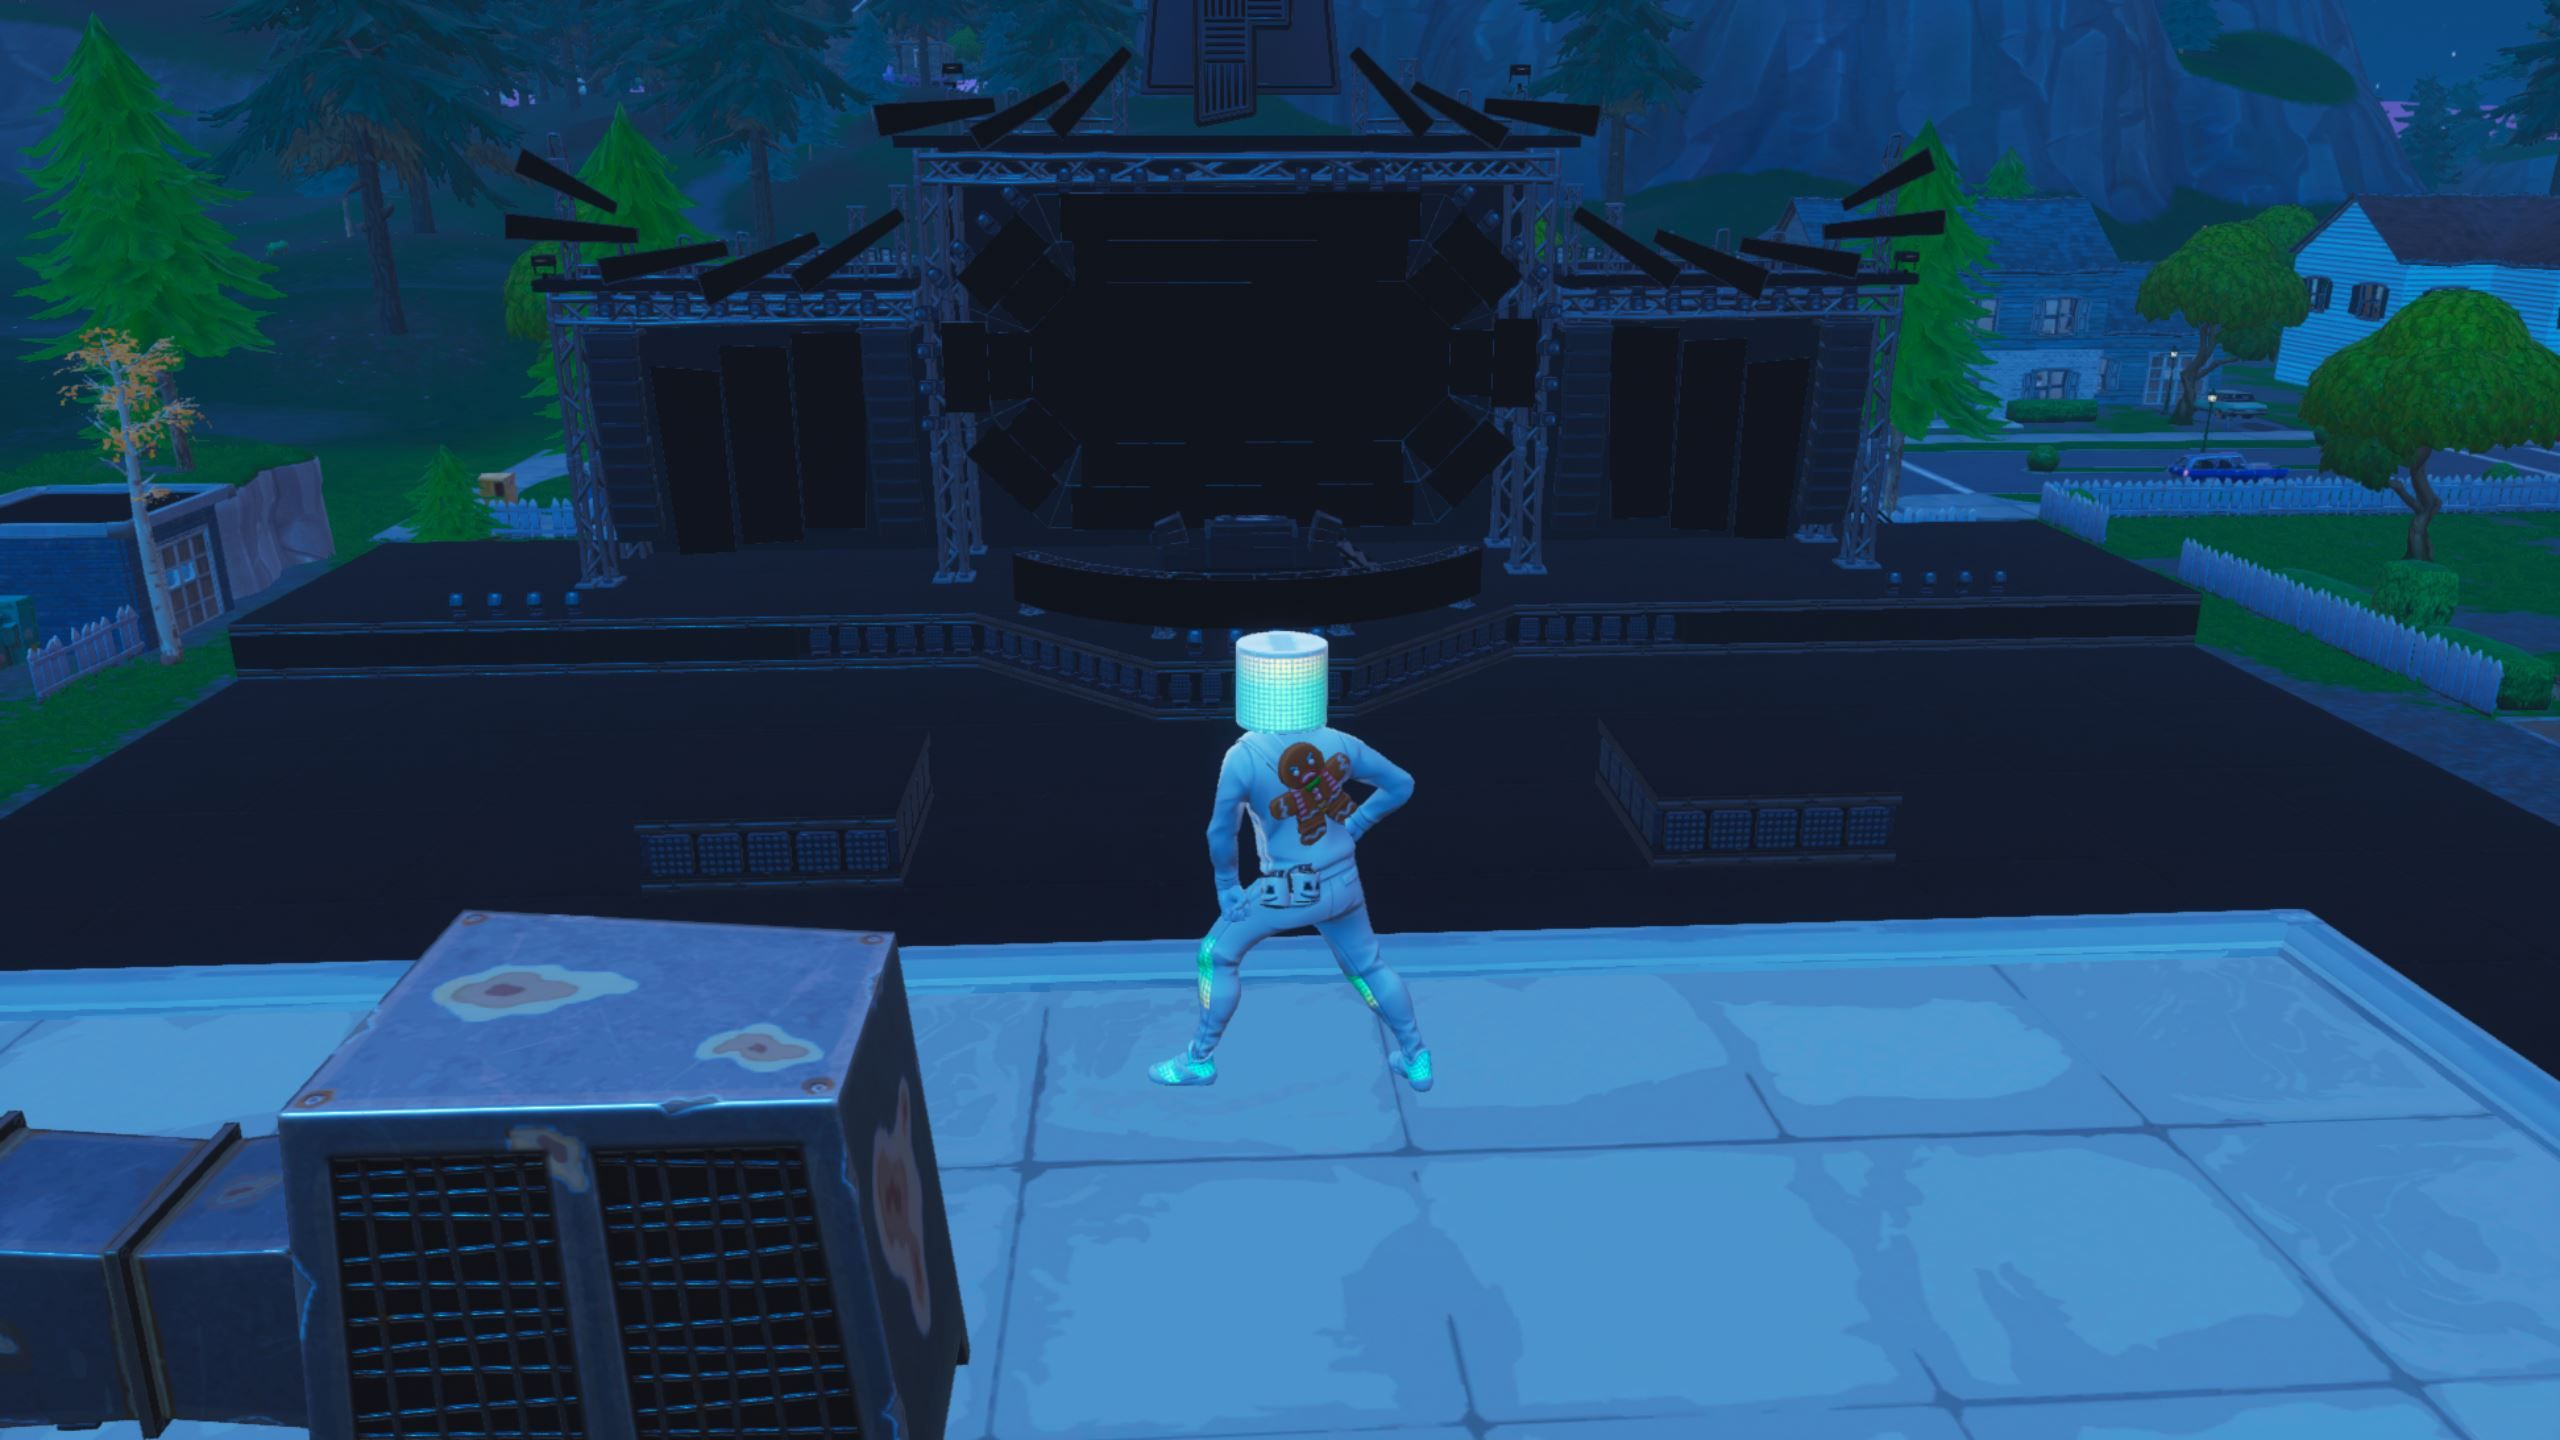 Marshmellos Fortnite Stage Is Now Complete Marshmellos Stage Started